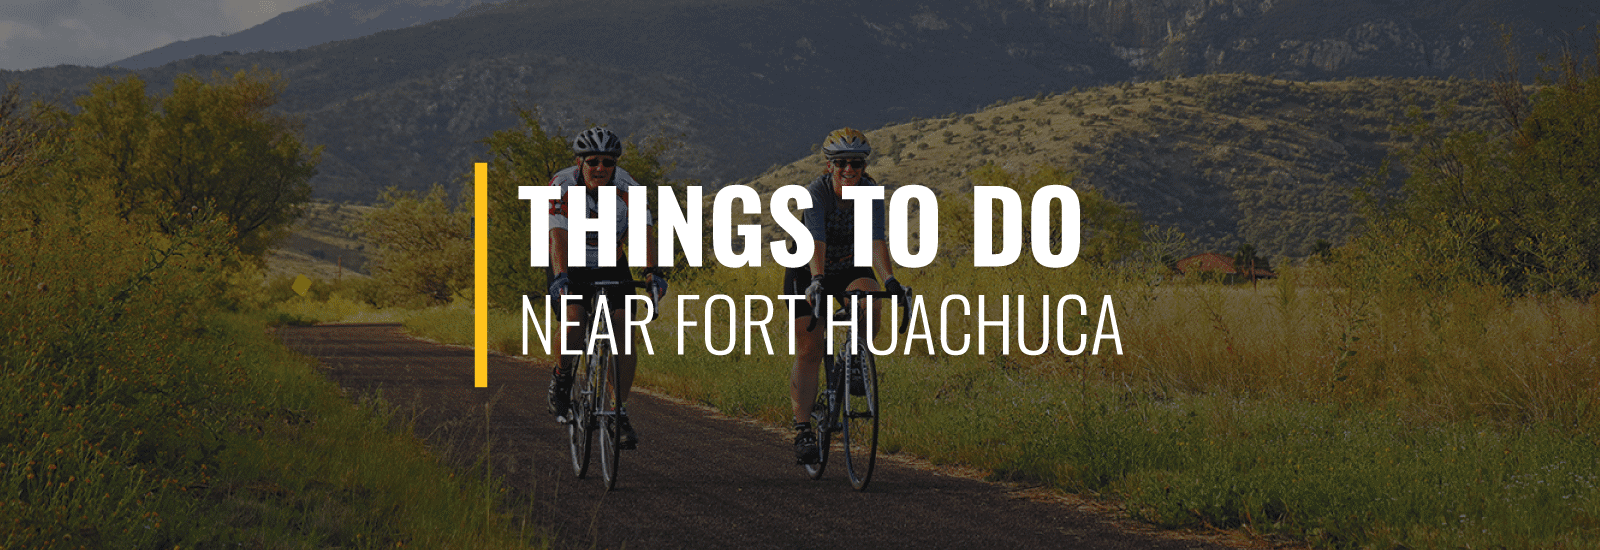 Things to Do Near Fort Huachuca